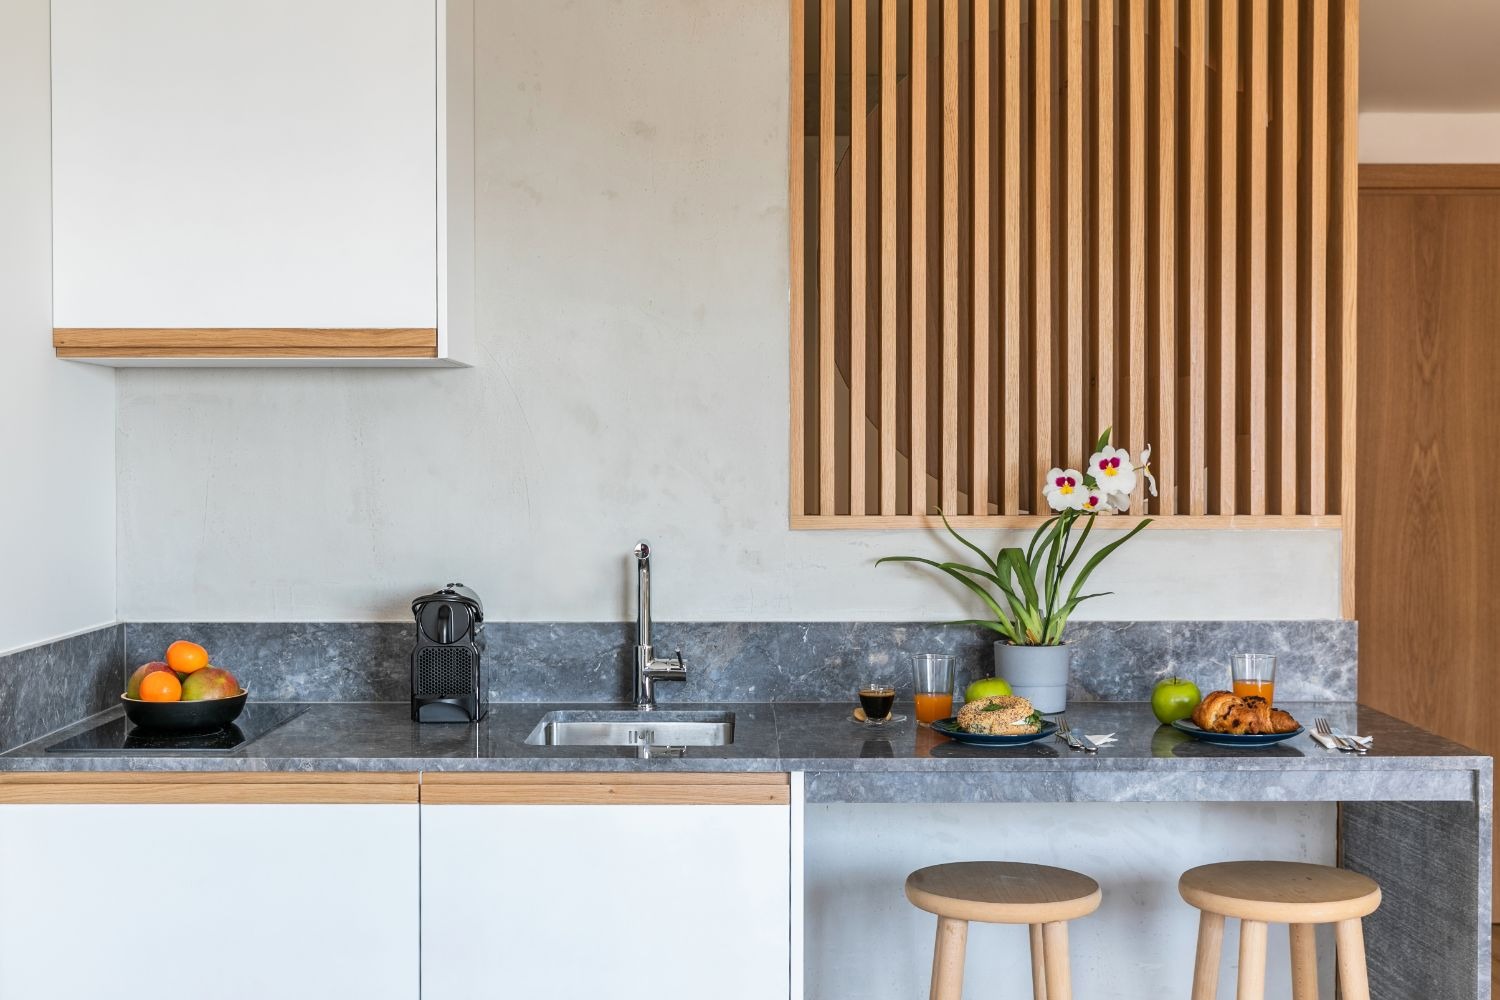 Studio 705 kitchenette